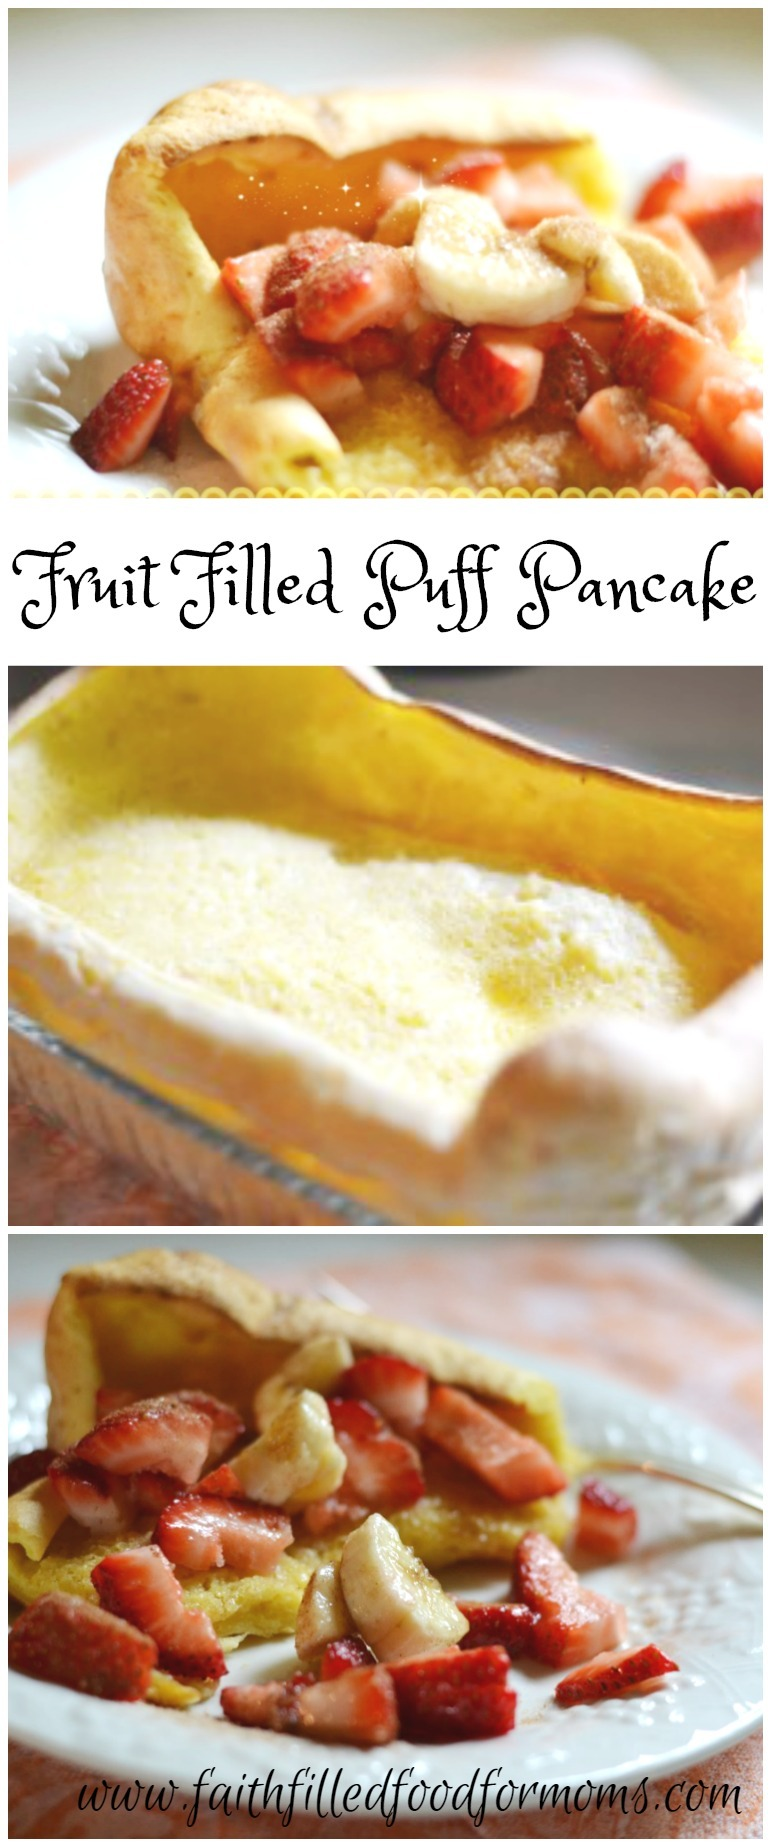 This fruit filled puff pancake is full of healthy ingredients! Made in minutes and cooked in 20! This is deelish! #pancakes #fruit #healthyrecipe